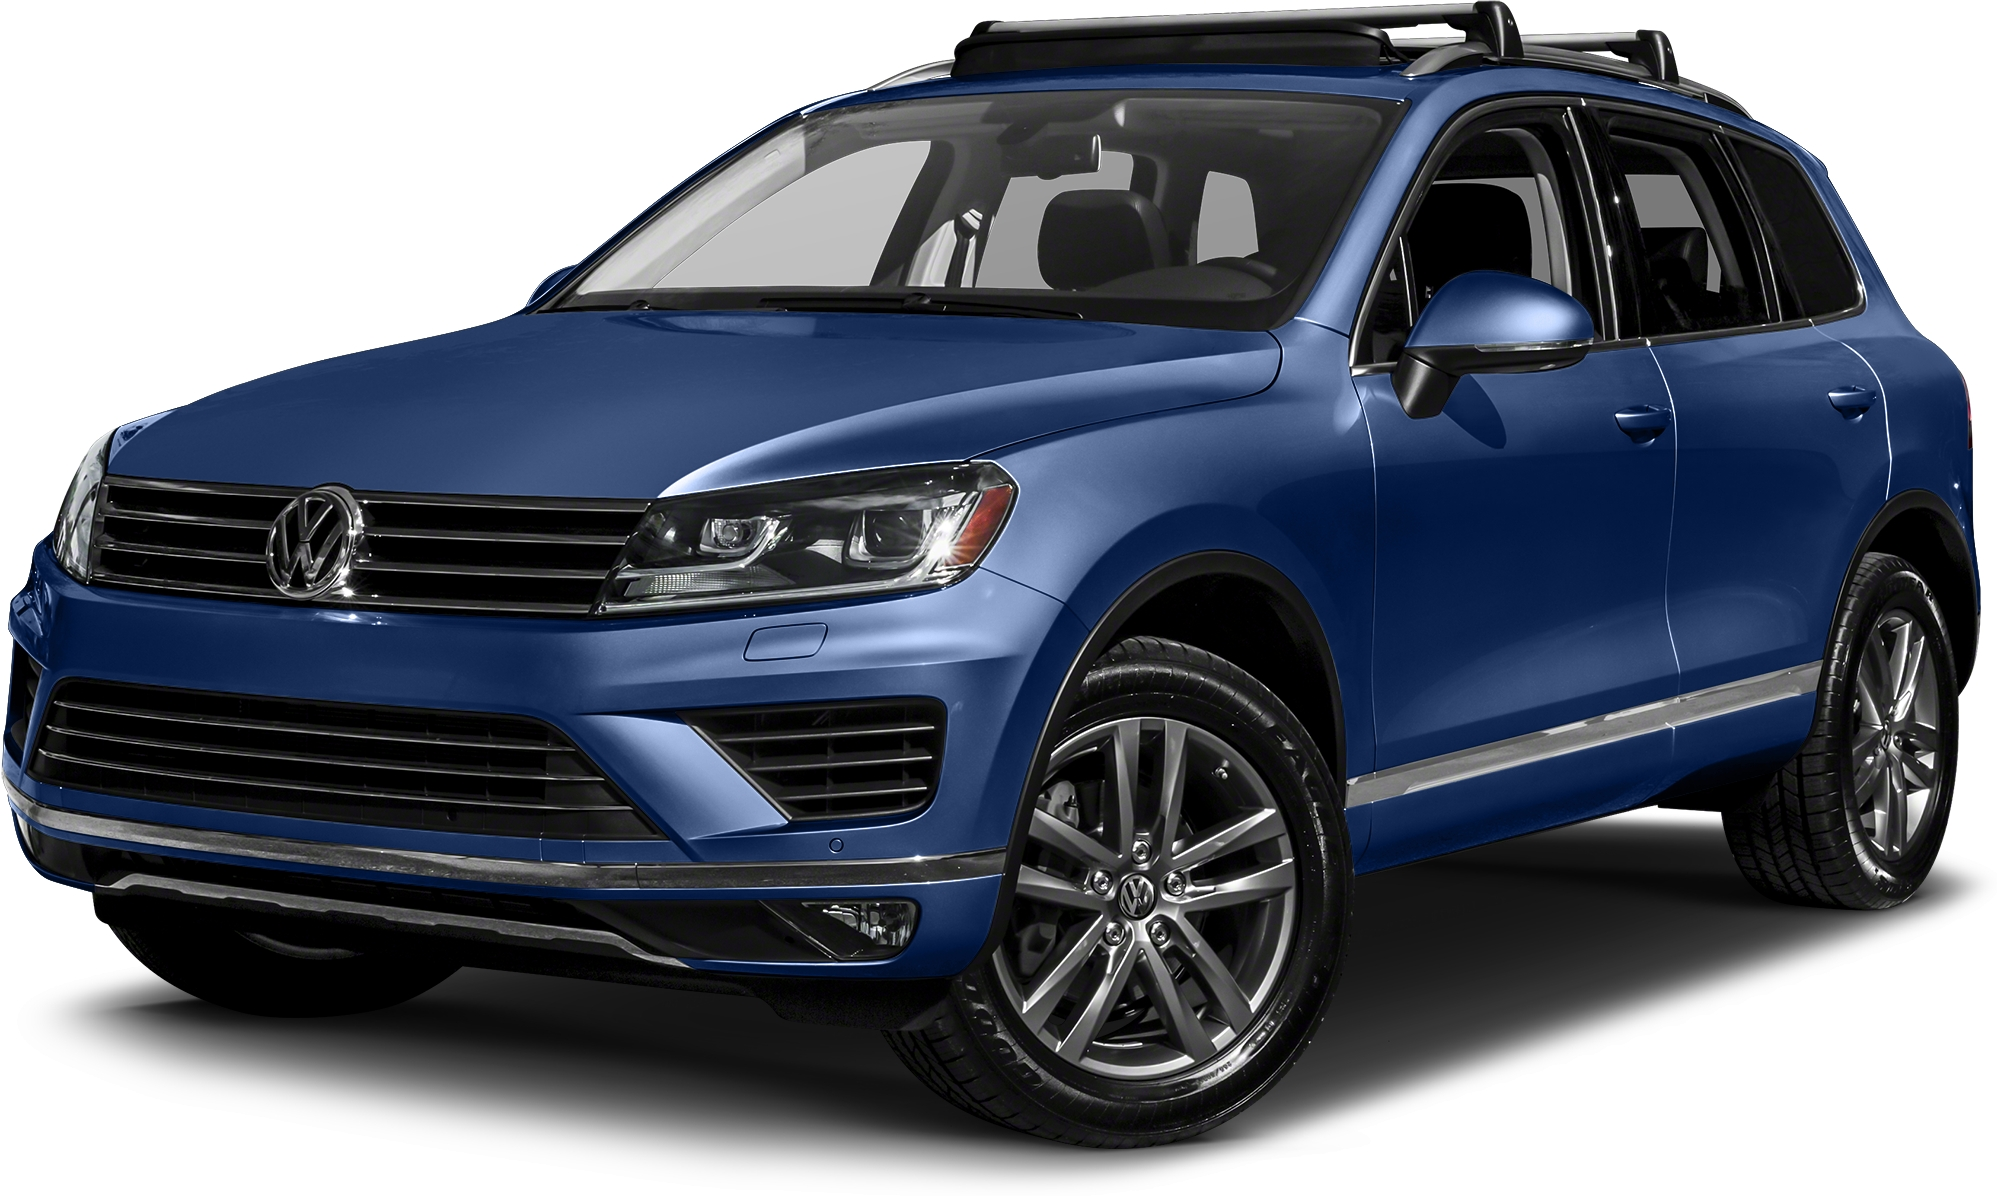 2017 volkswagen touareg 4dr suv v6 wolfsburg brooklyn ny 15233088. Black Bedroom Furniture Sets. Home Design Ideas